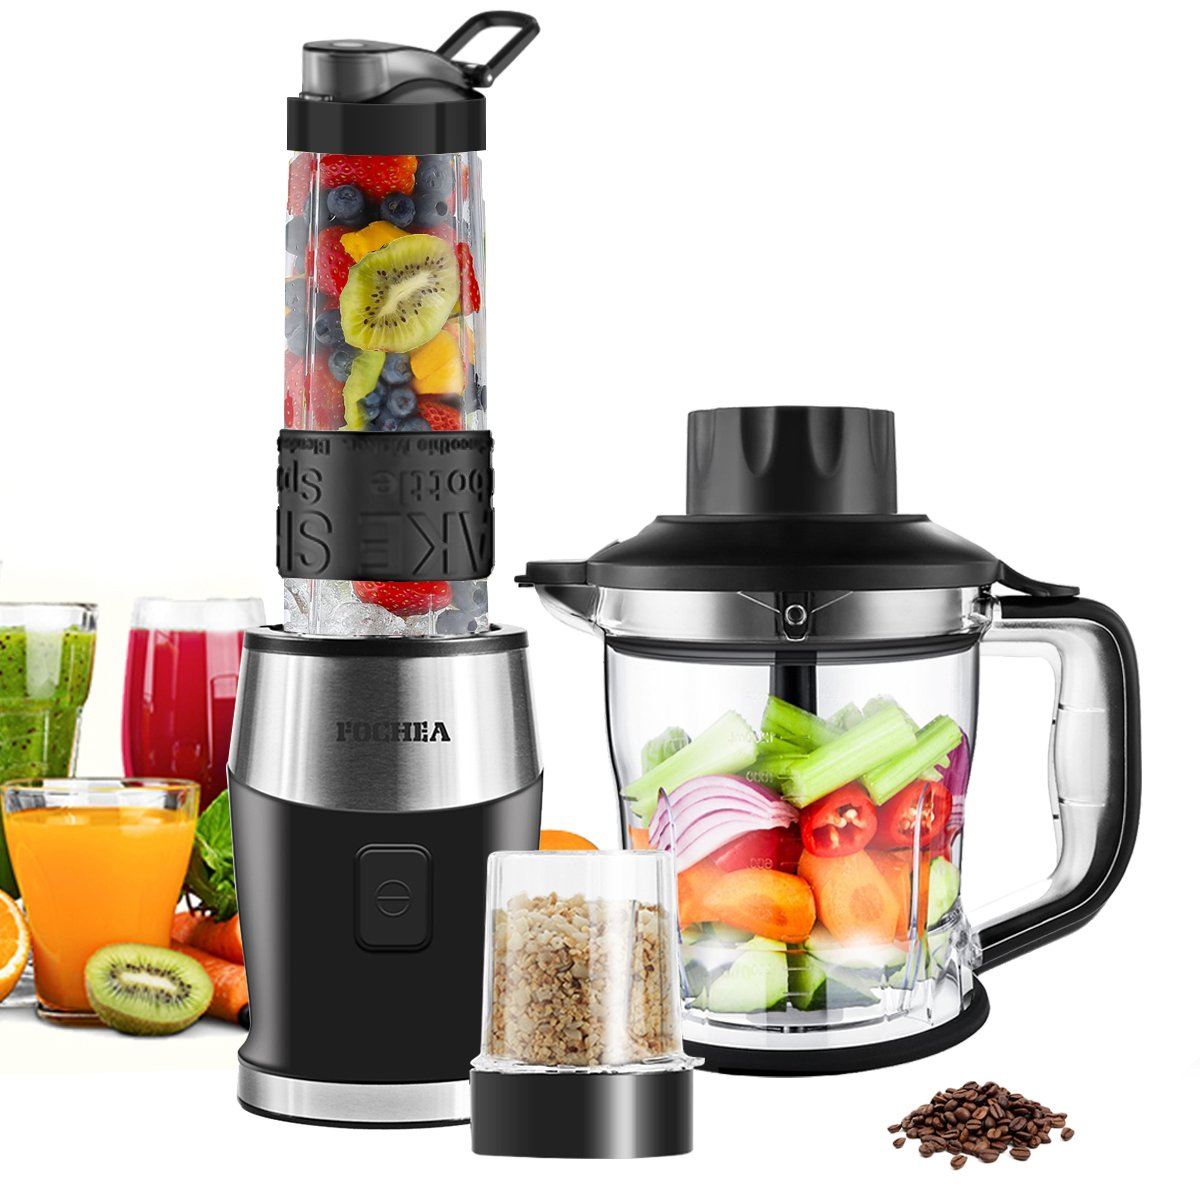 Fochea Pro Smoothie 3 in 1 Food Processor Multi-Function Kitchen System, 700W High Speed Blender/Chopper/Grinder with 570ml BPA-Free Bottle, Easy to Clean